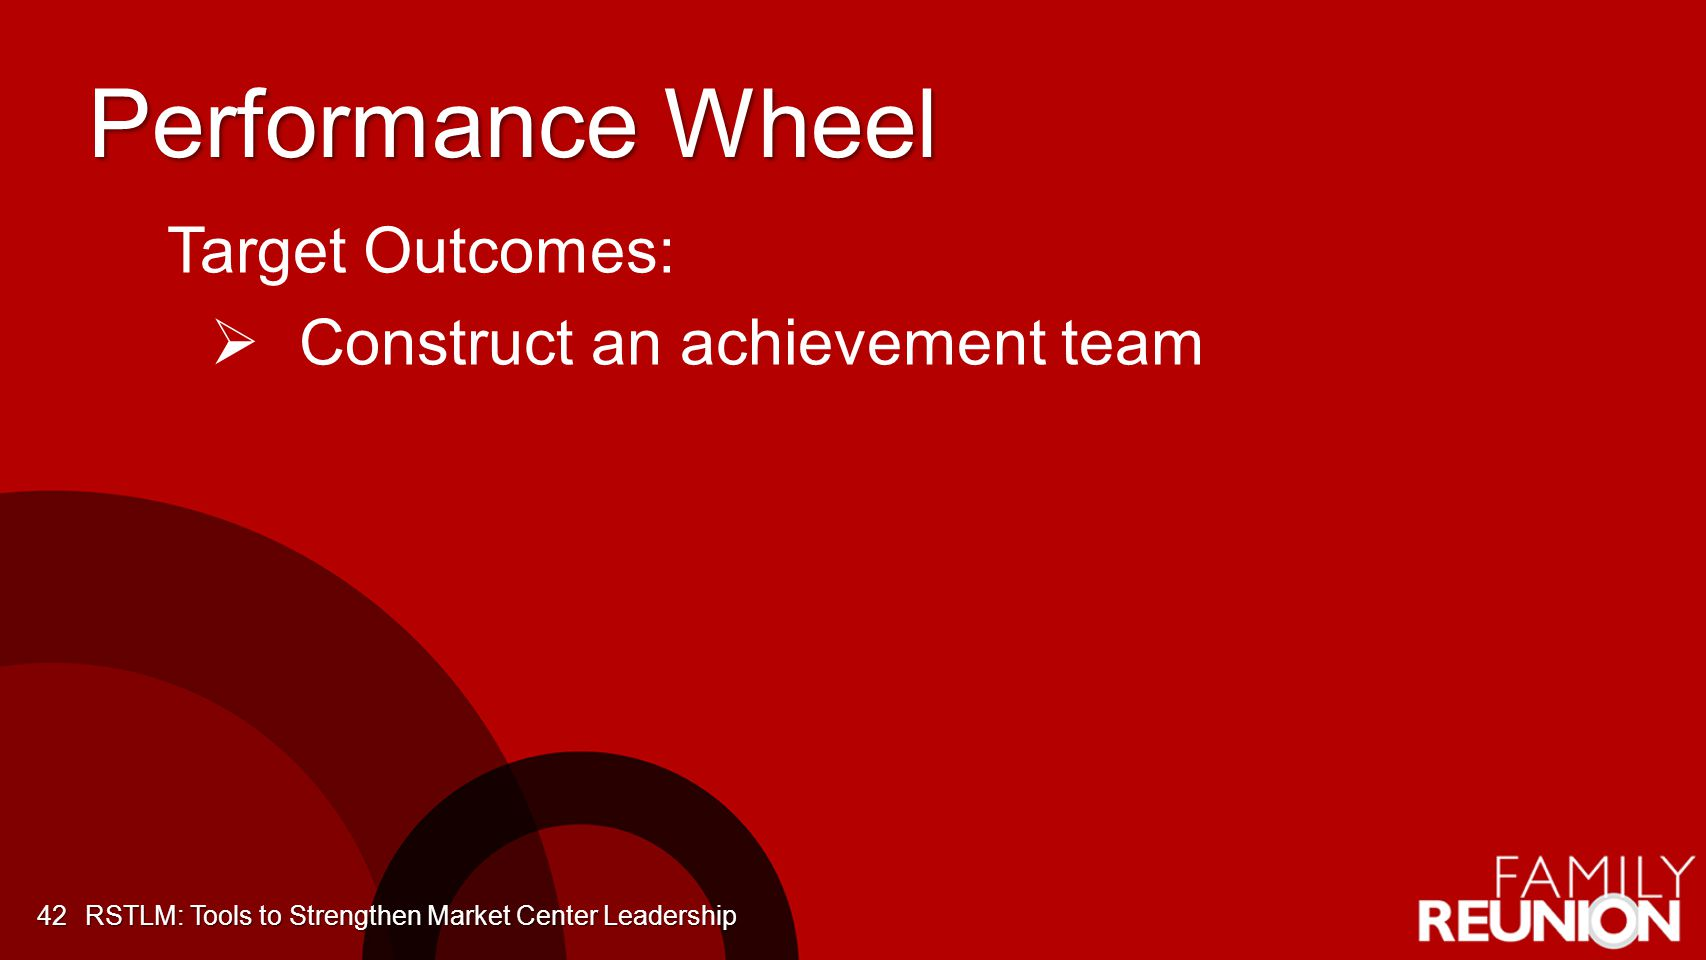 Performance Wheel Target Outcomes: Construct an achievement team